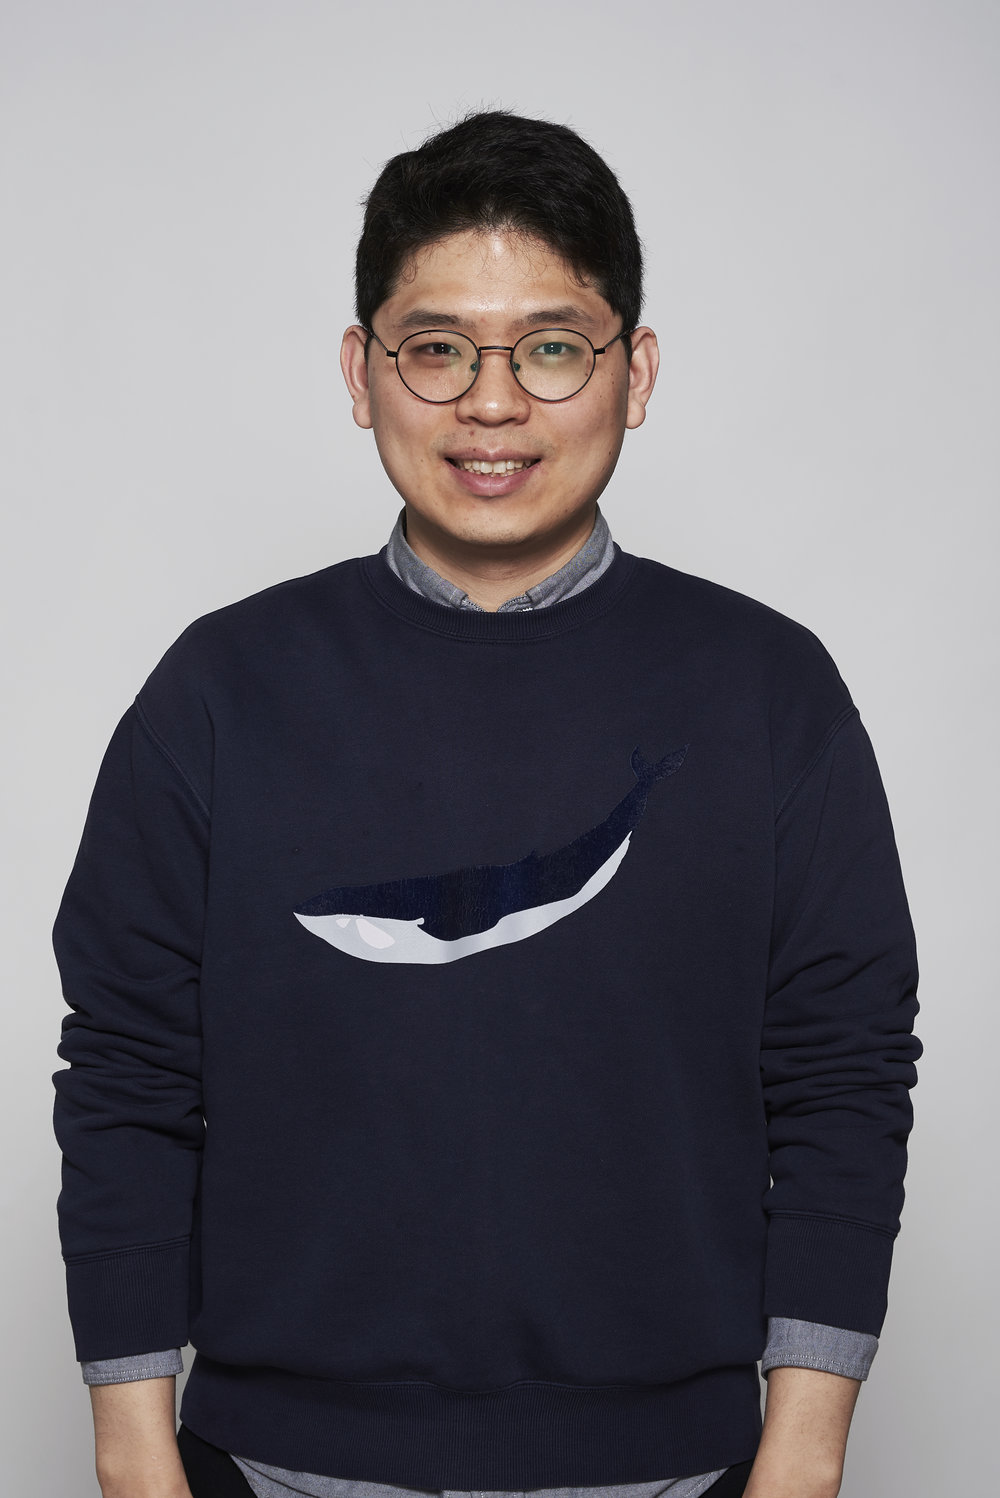 Copy of <strong>Jinjae Lee</strong><br>Interaction Designer<br>jinjae@above.se<br>